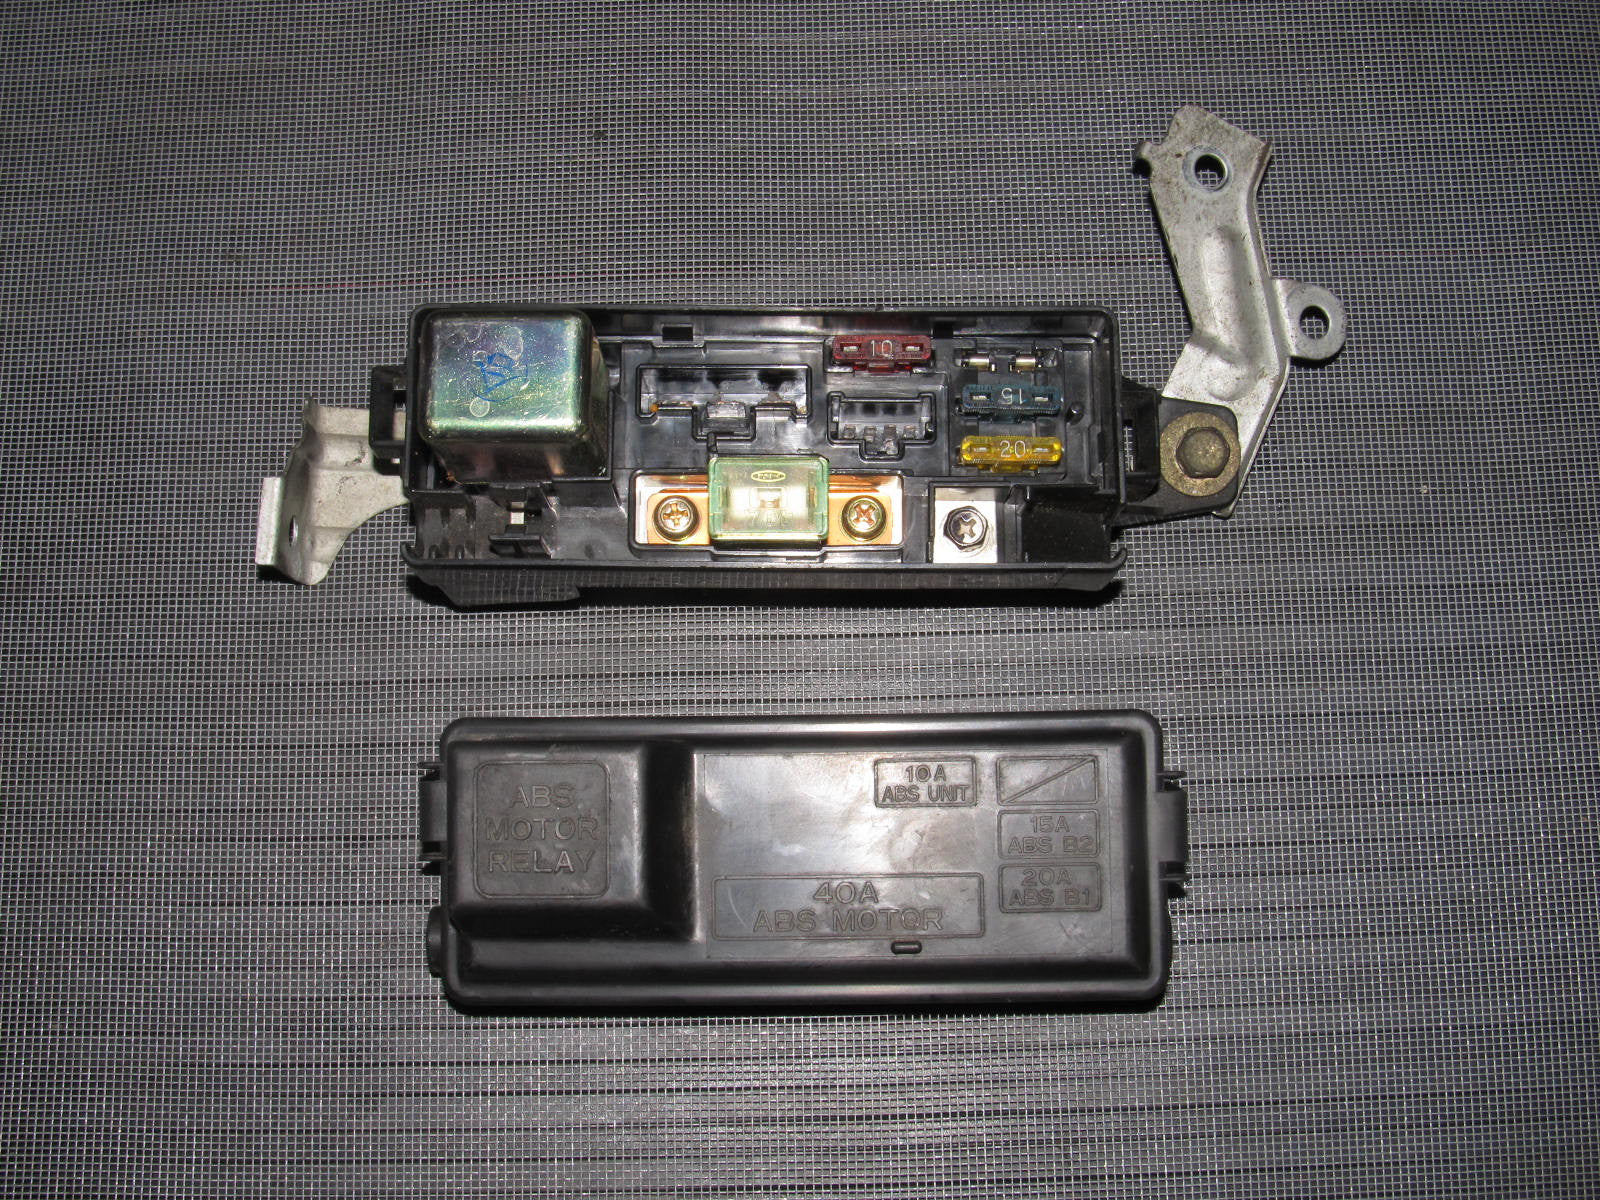 94 95 96 97 98 99 00 01 acura integra oem abs fuse box autopartone com 94 95 96 97 98 99 00 01 acura integra oem abs fuse box